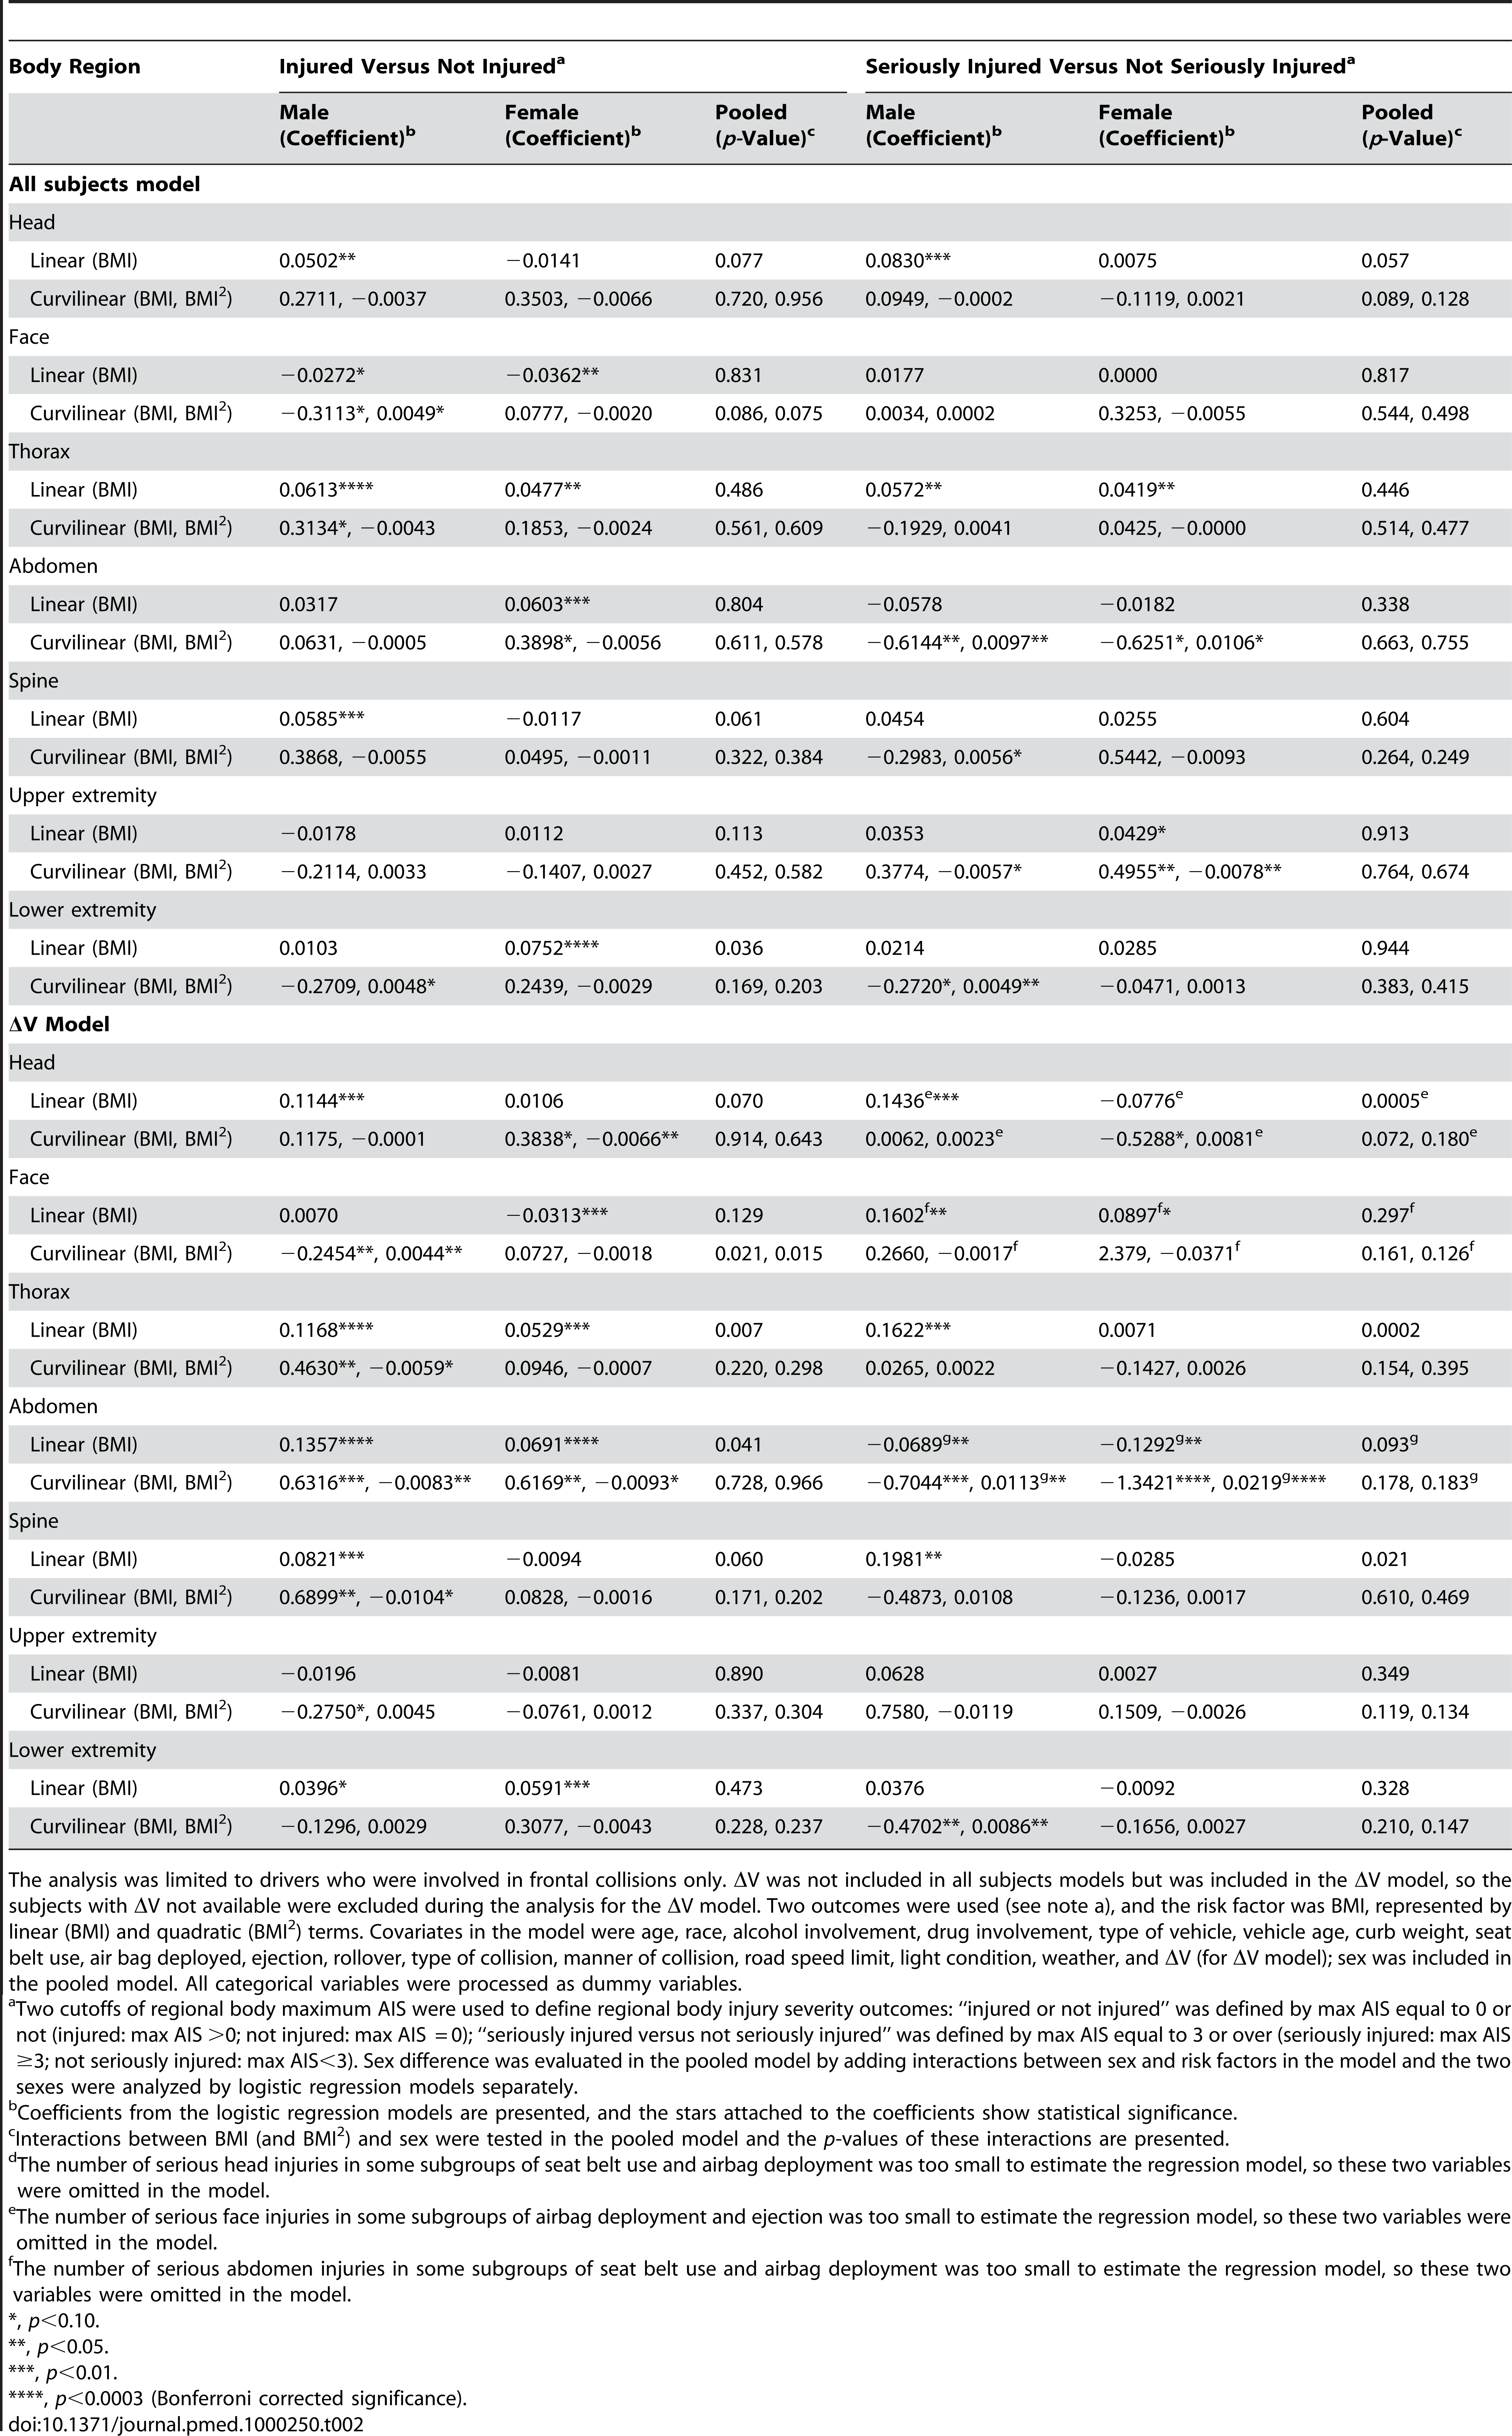 Logistic regression coefficients of BMI for regional body injury severity, by sex.